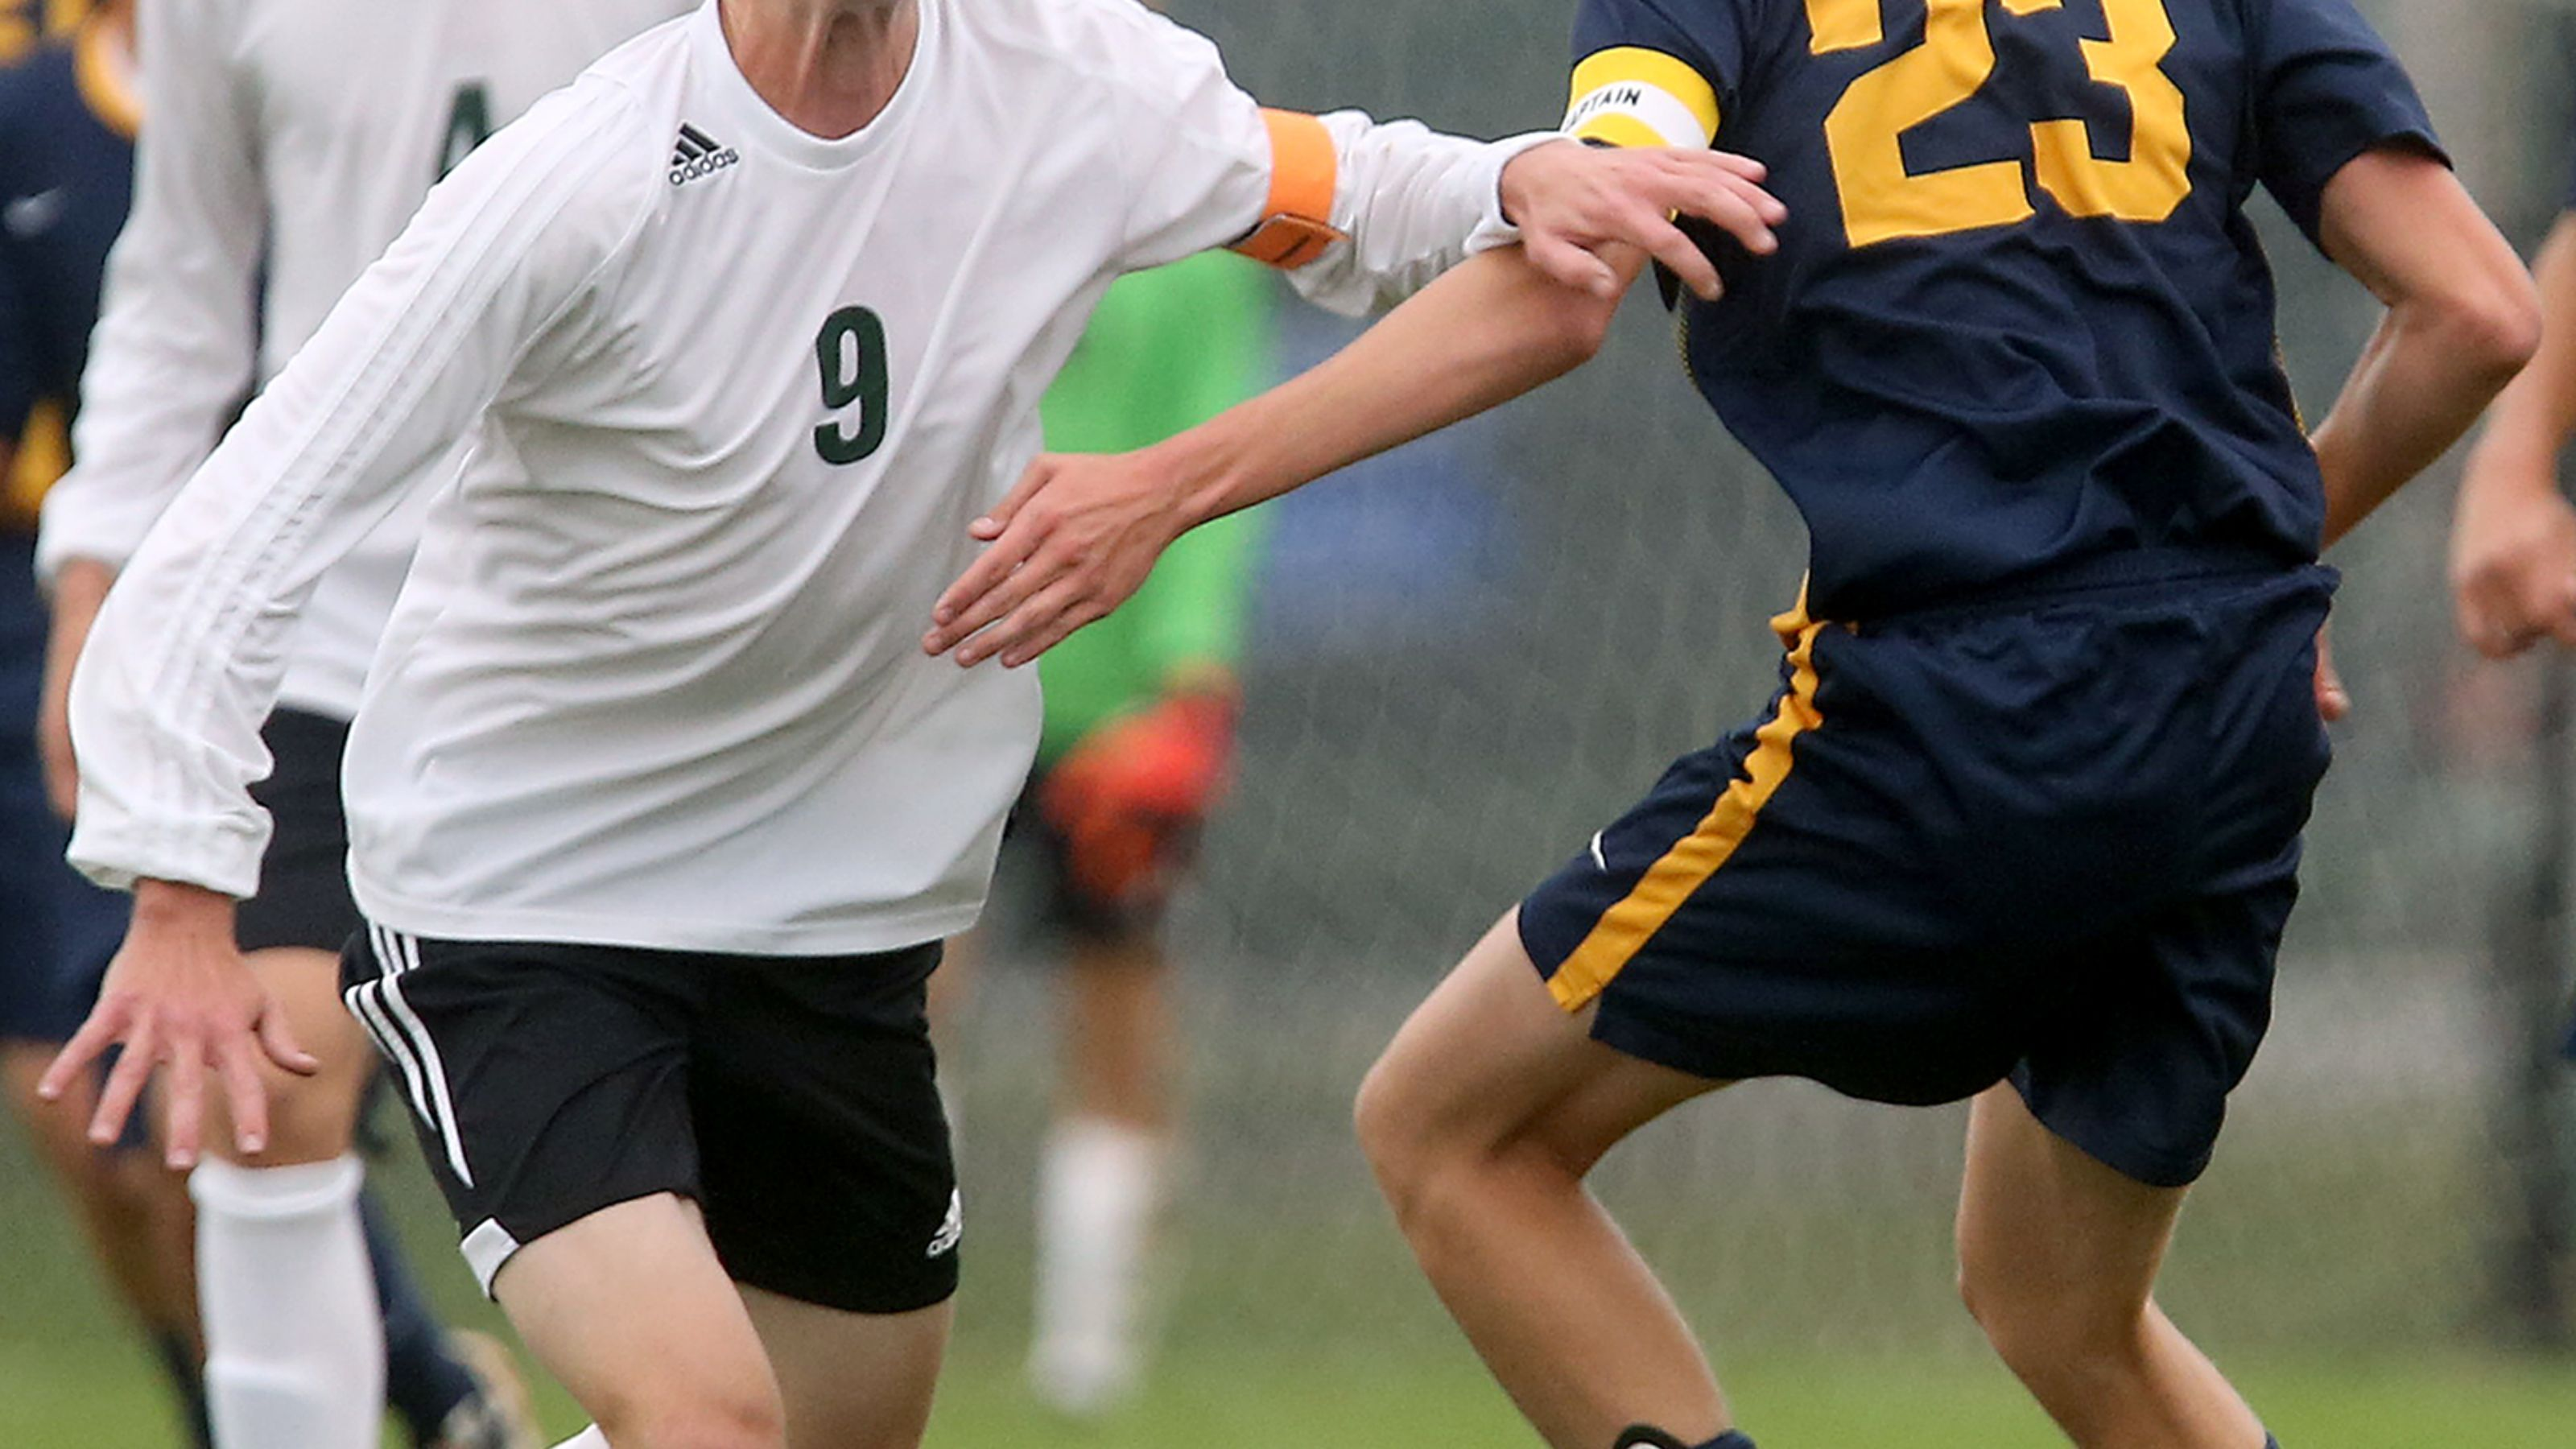 Nearly 150 Mcs Students Suffer Concussions